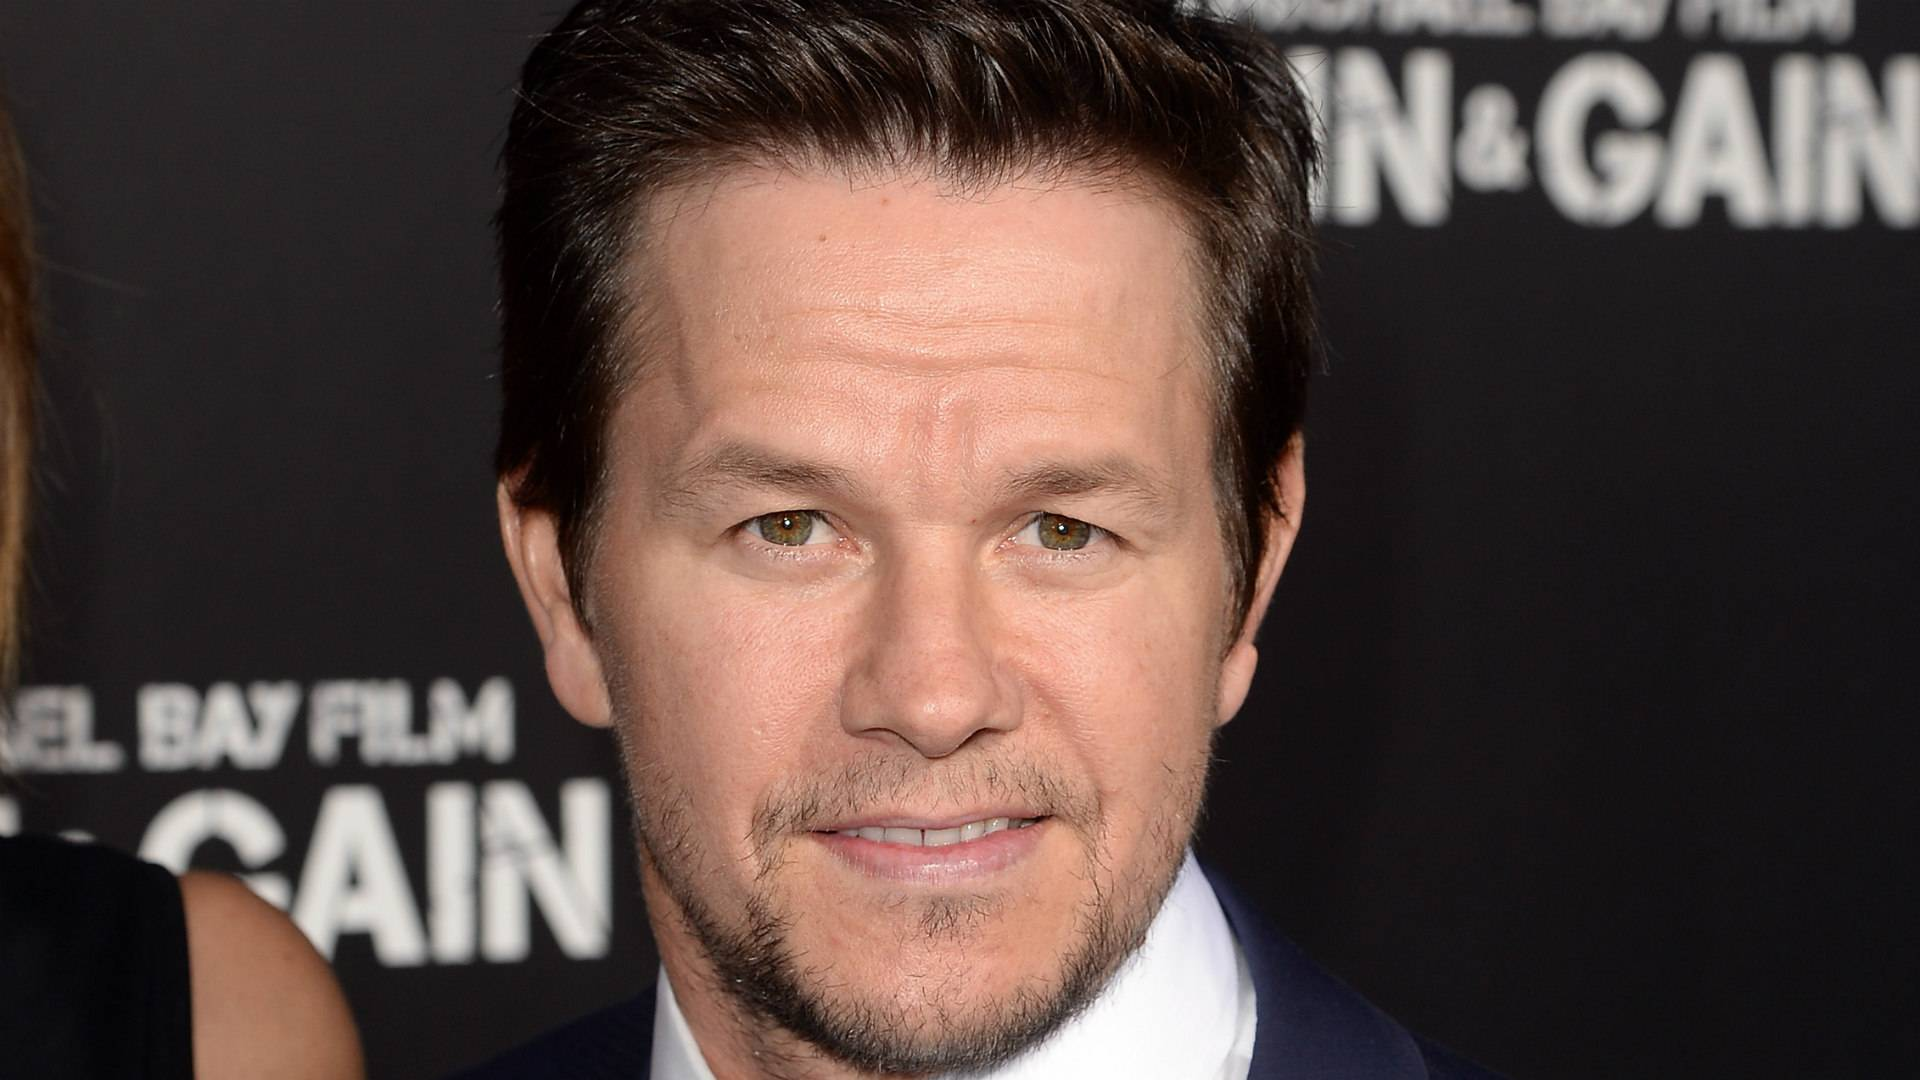 Mark Wahlberg (Dirk Diggler in Boogie Nights - L'altra Hollywood), foto: Getty Images